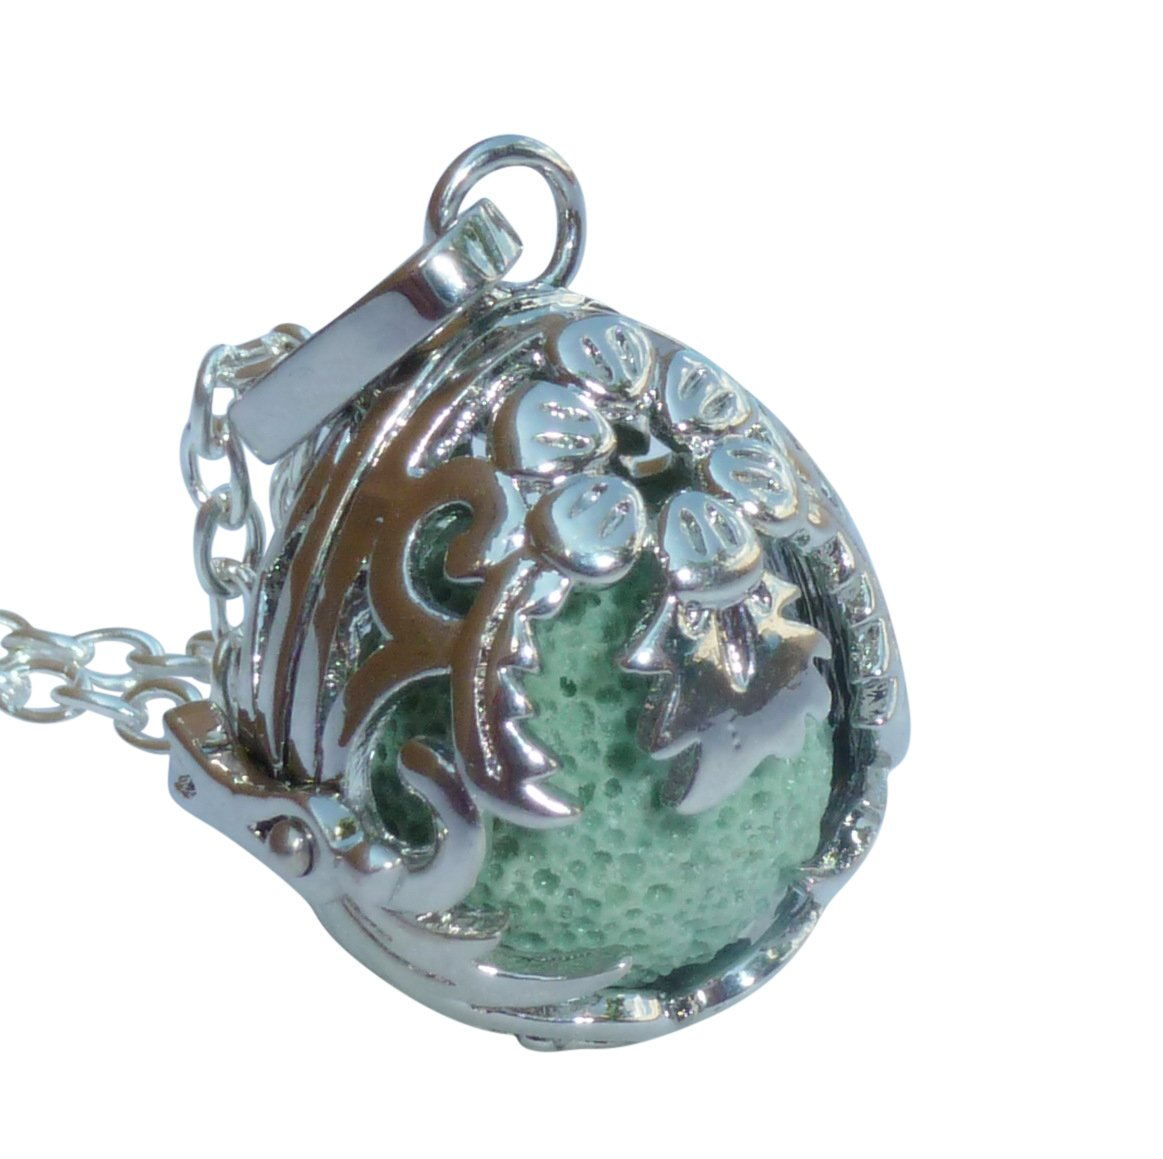 UMBRELLALABORATORY YOur perSOnal STYlish Essential oil necklace Steampunk Dragon EgG d2 0